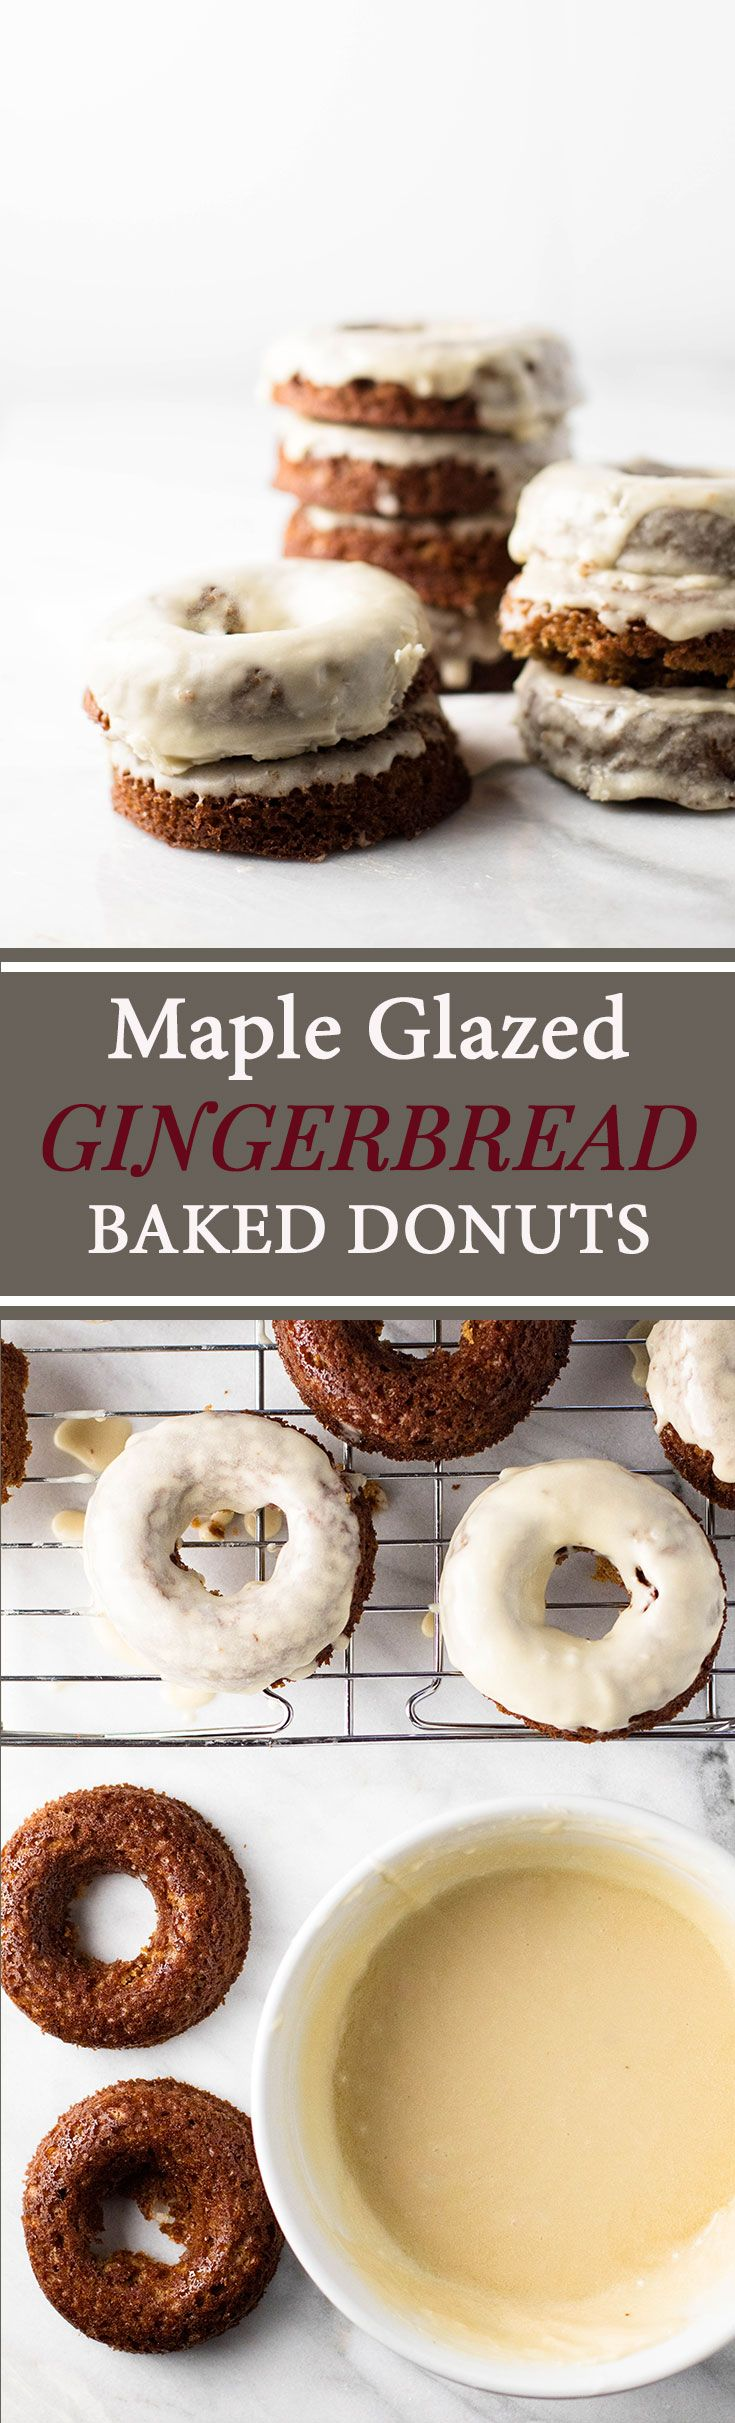 Gingerbread Baked Donuts with Maple Glaze | girlgonegourmet.com via @april7116